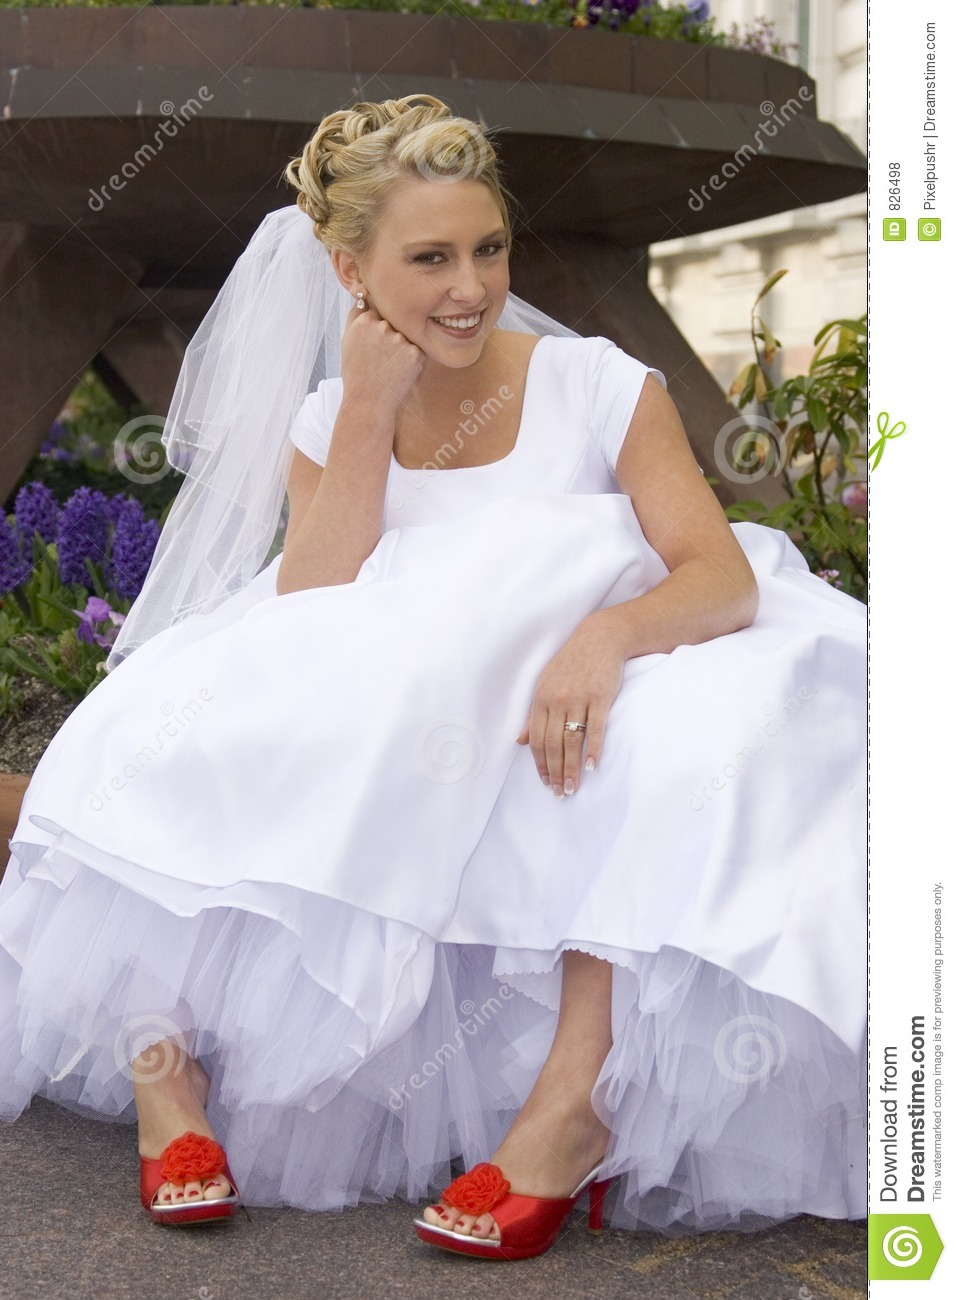 Bride with Red Shoes Sitting on Curb